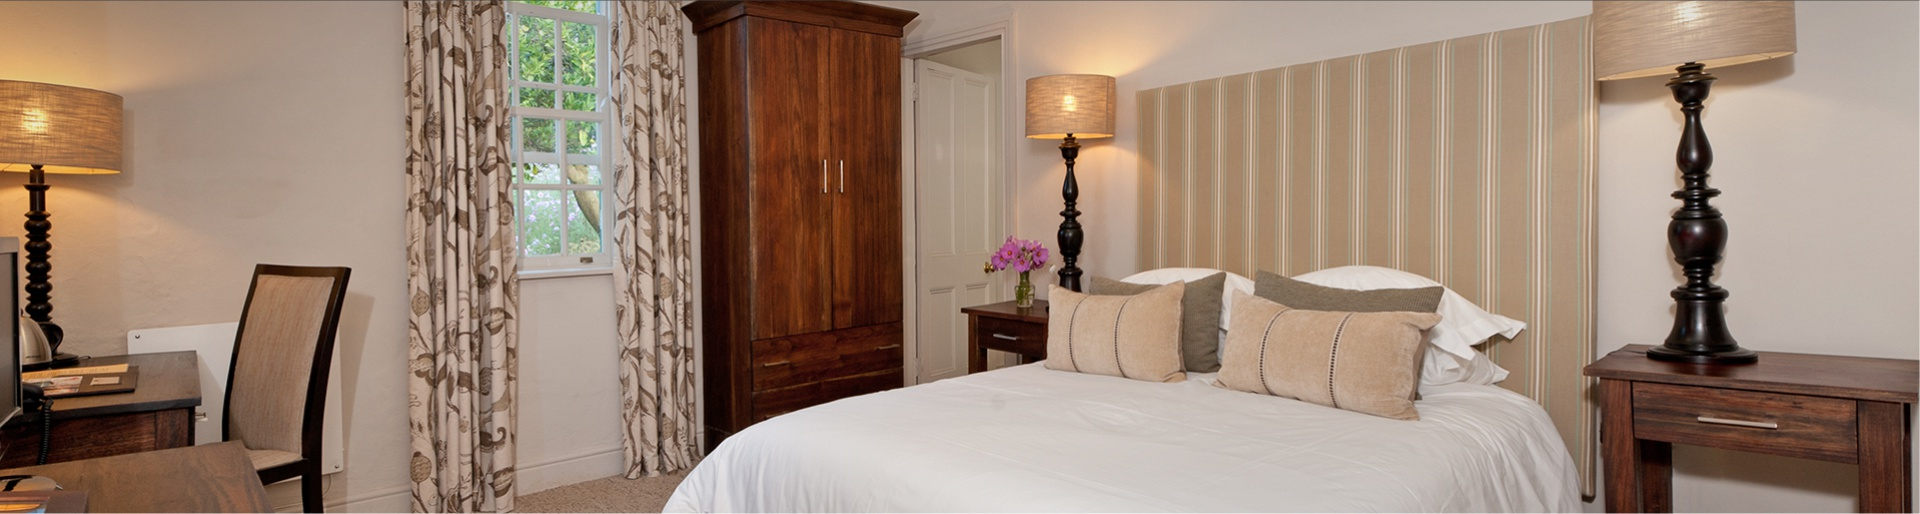 Dedoornkraal Riversdale Accommodation Luxury Rooms